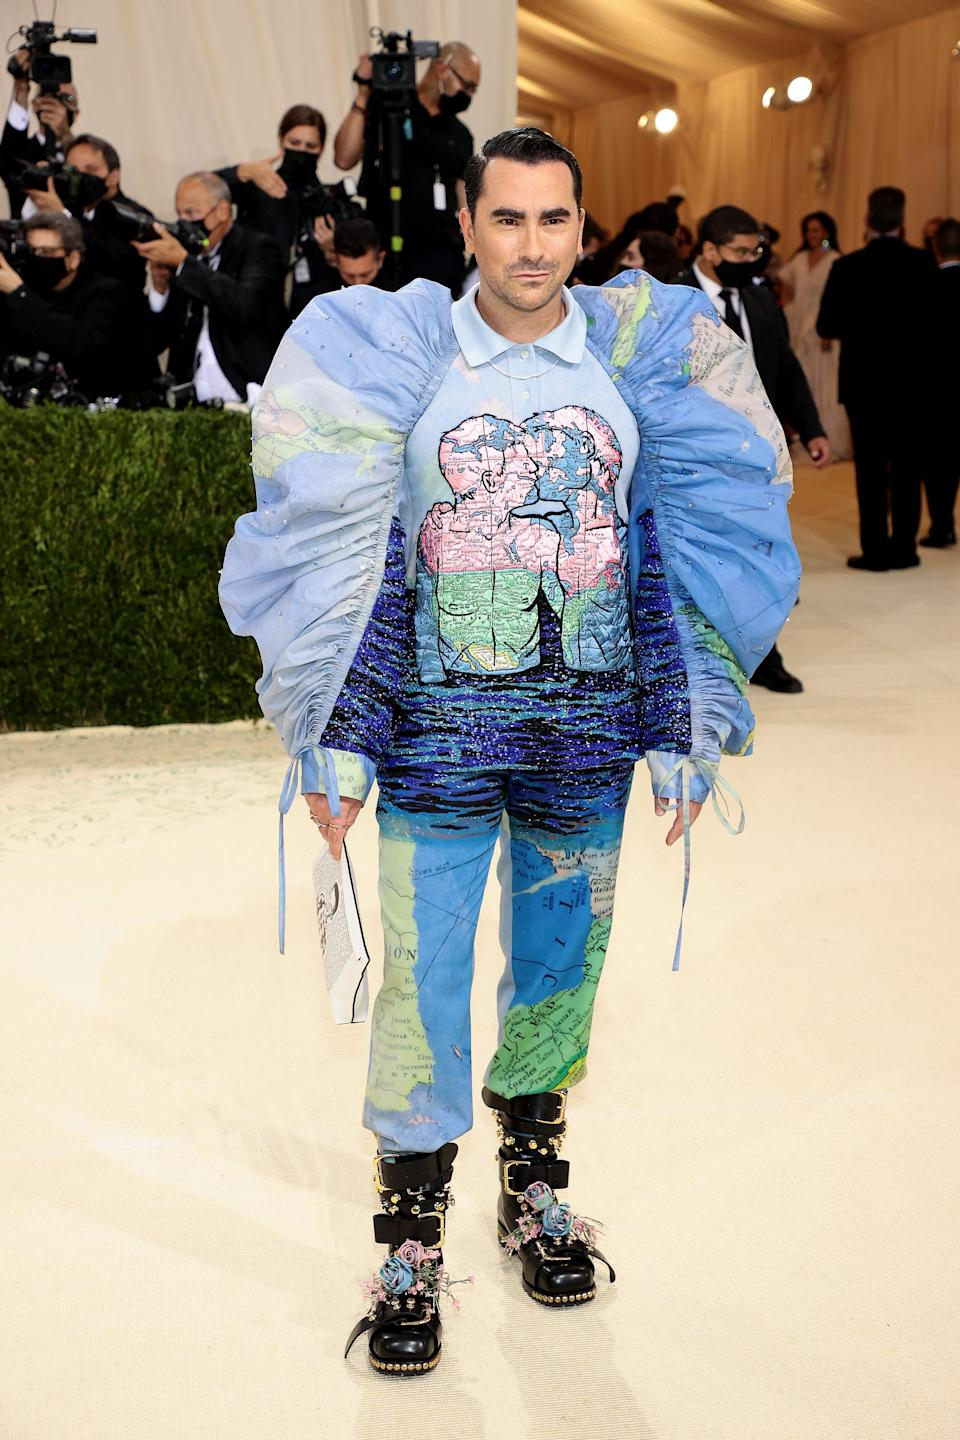 <h2>Dan Levy wearing Loewe</h2><br><em>Schitt's Creek</em>'s Dan Levy, in collaboration with Loewe designer Jonathan Anderson, used the Met Gala to spread a message about marriage equality.